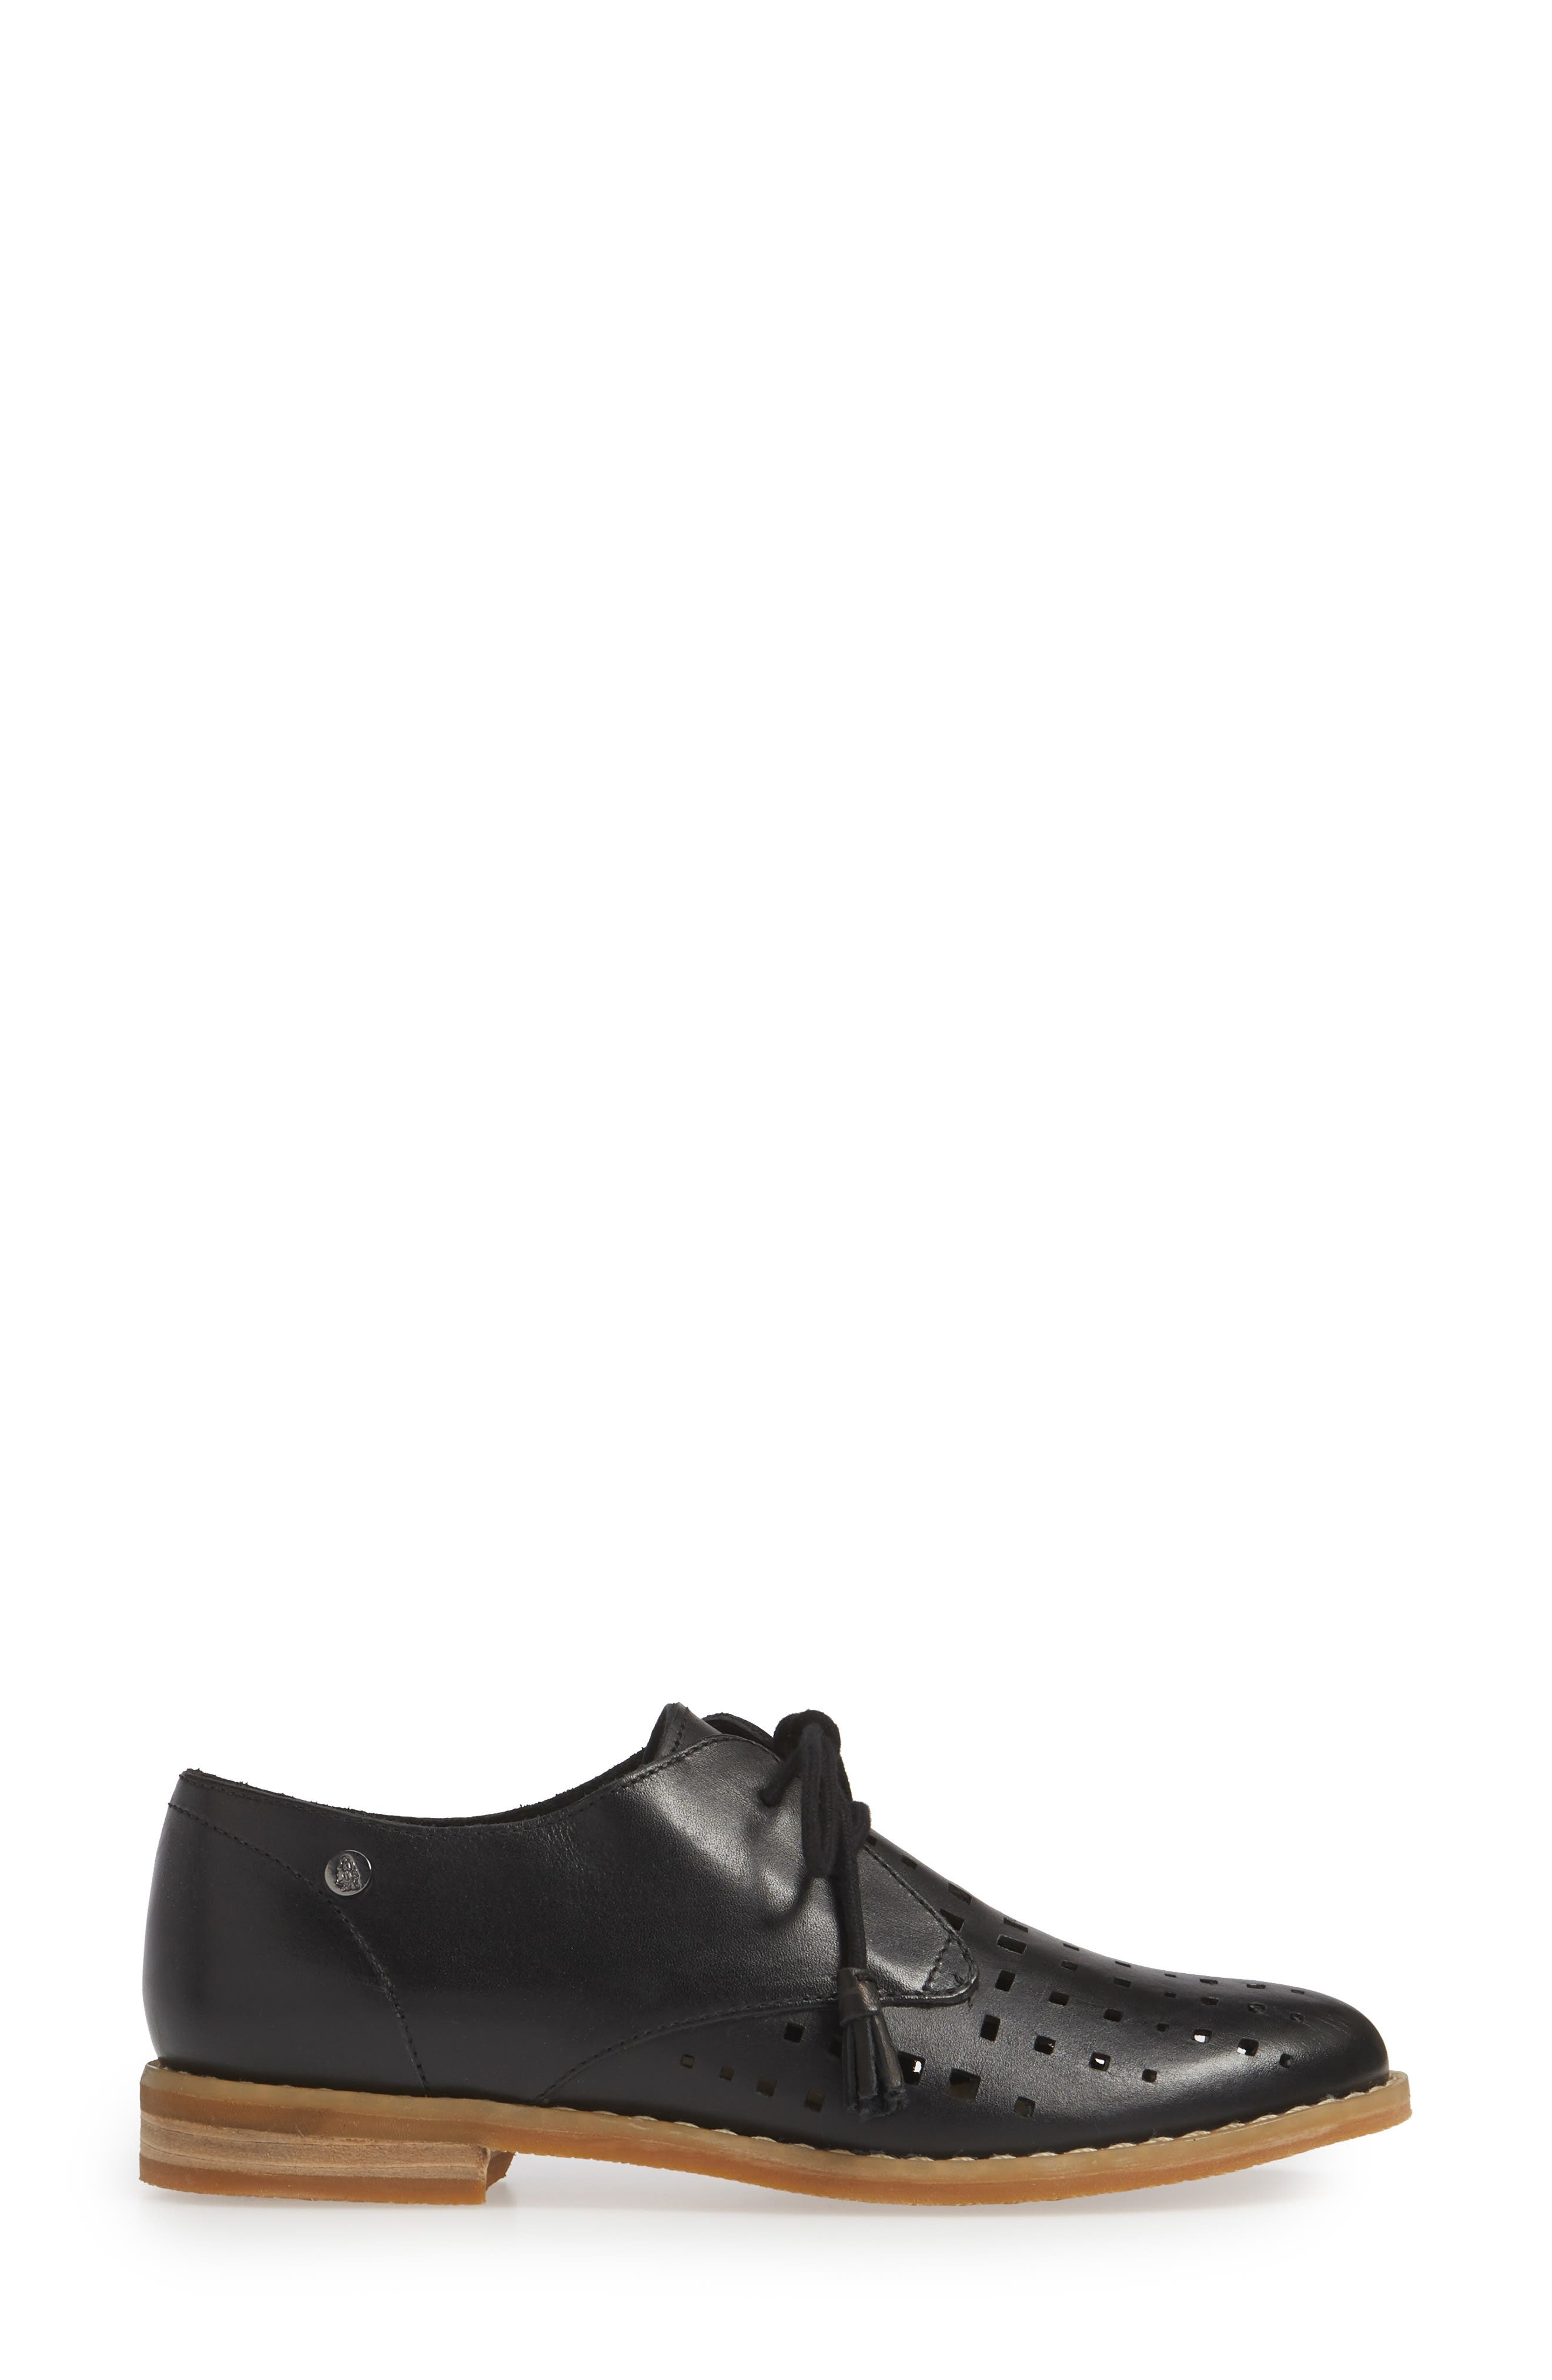 HUSH PUPPIES<SUP>®</SUP>, Chardon Perforated Derby, Alternate thumbnail 3, color, BLACK LEATHER